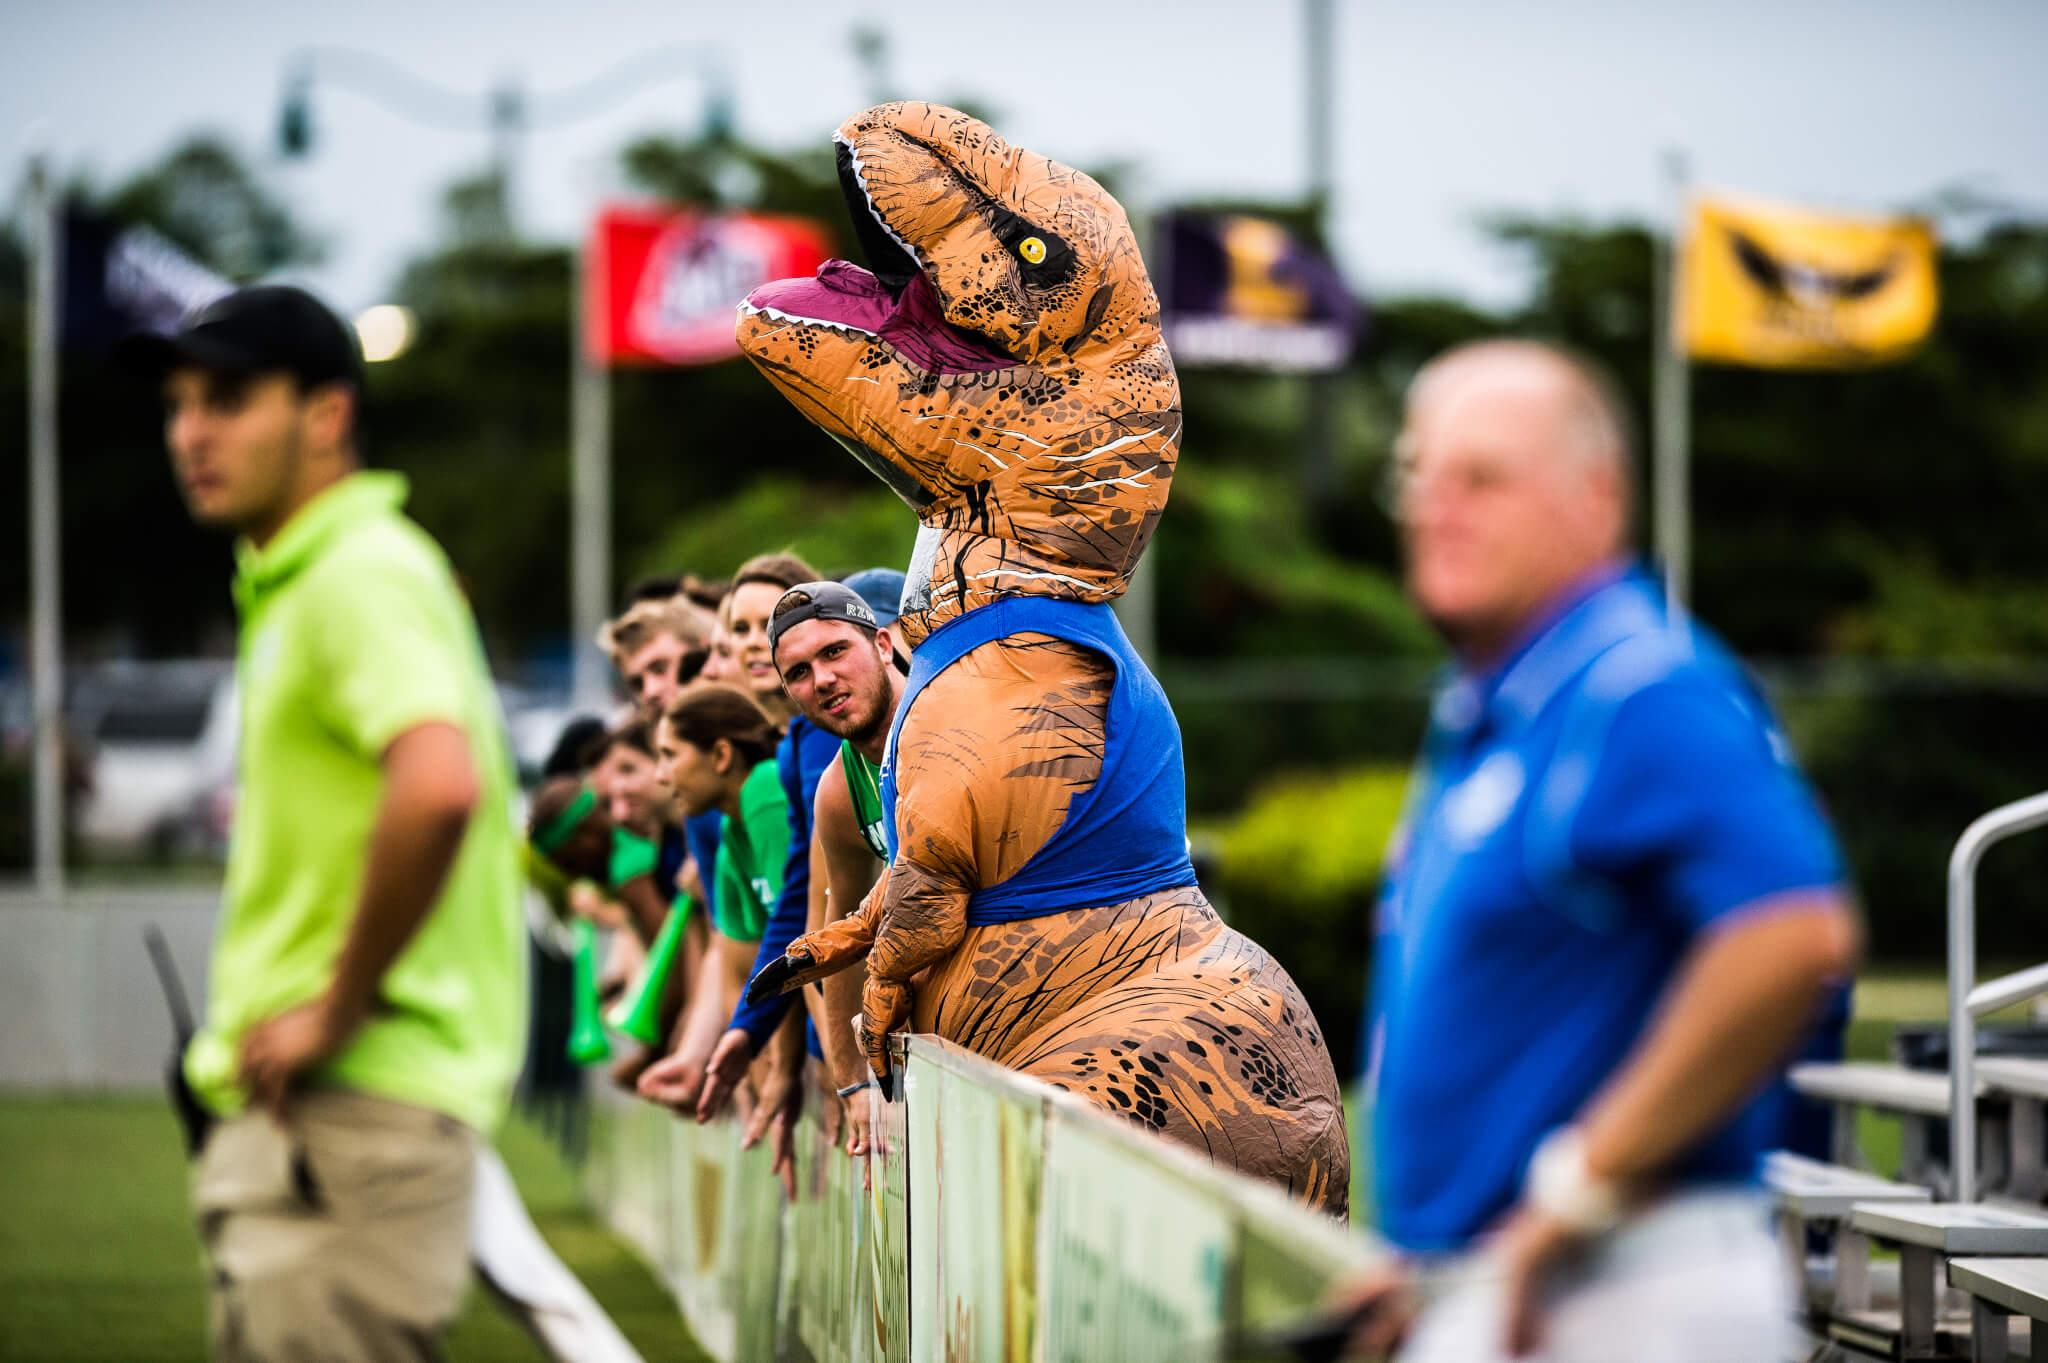 Dirty Dino: The T-Rex taking the Dirty Birds and FGCU Athletics by storm